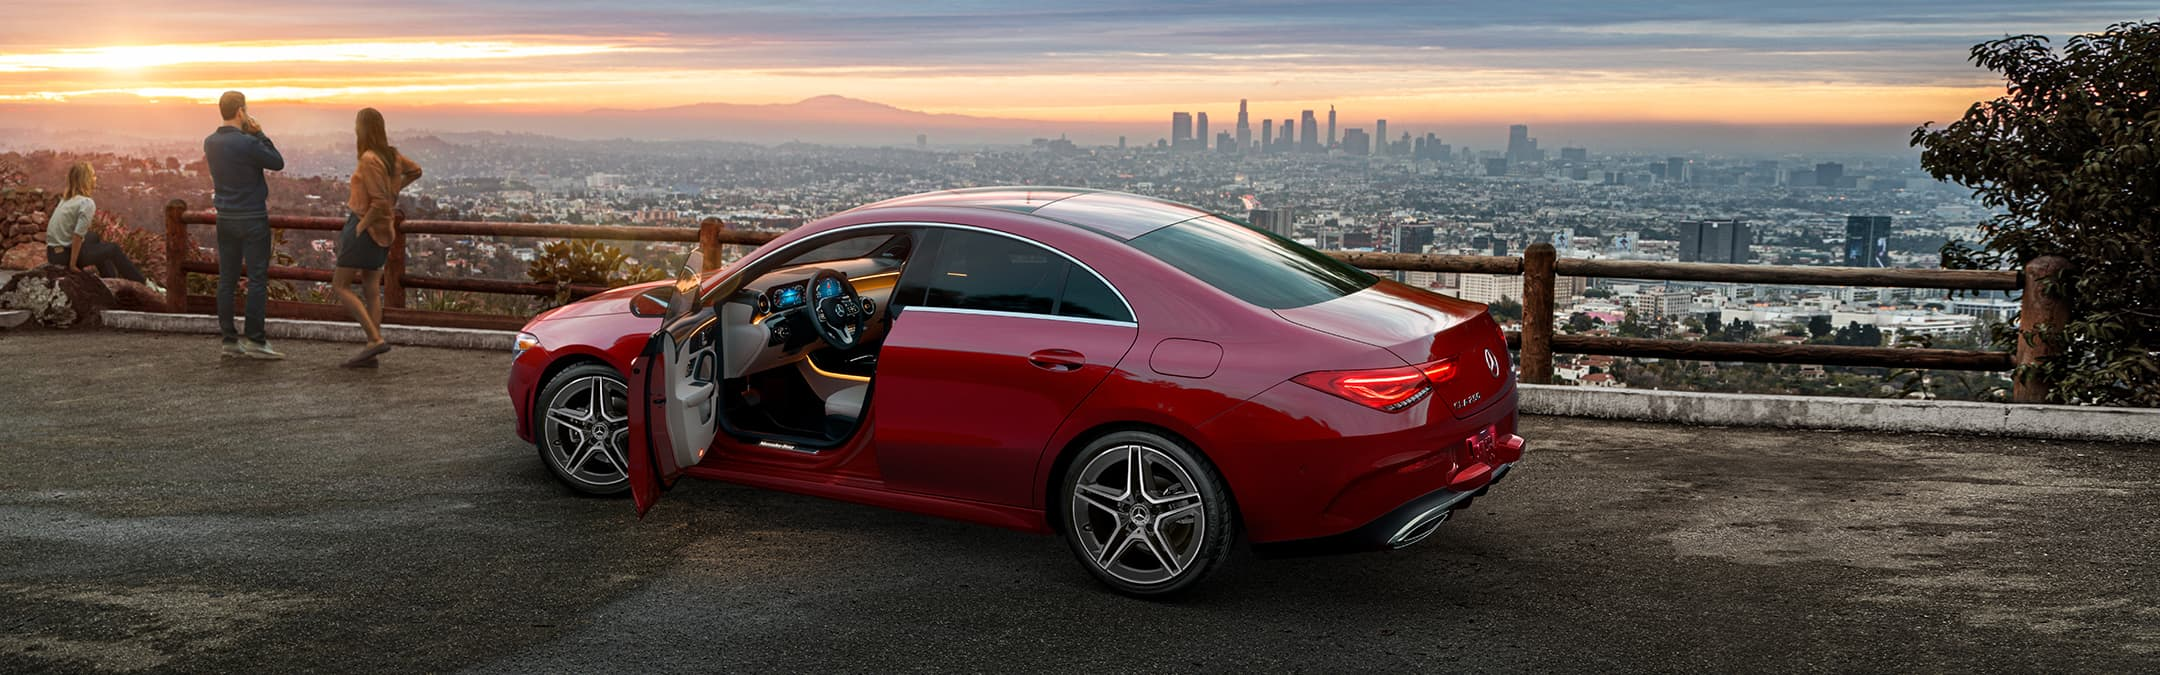 2020 CLA Coupe Design